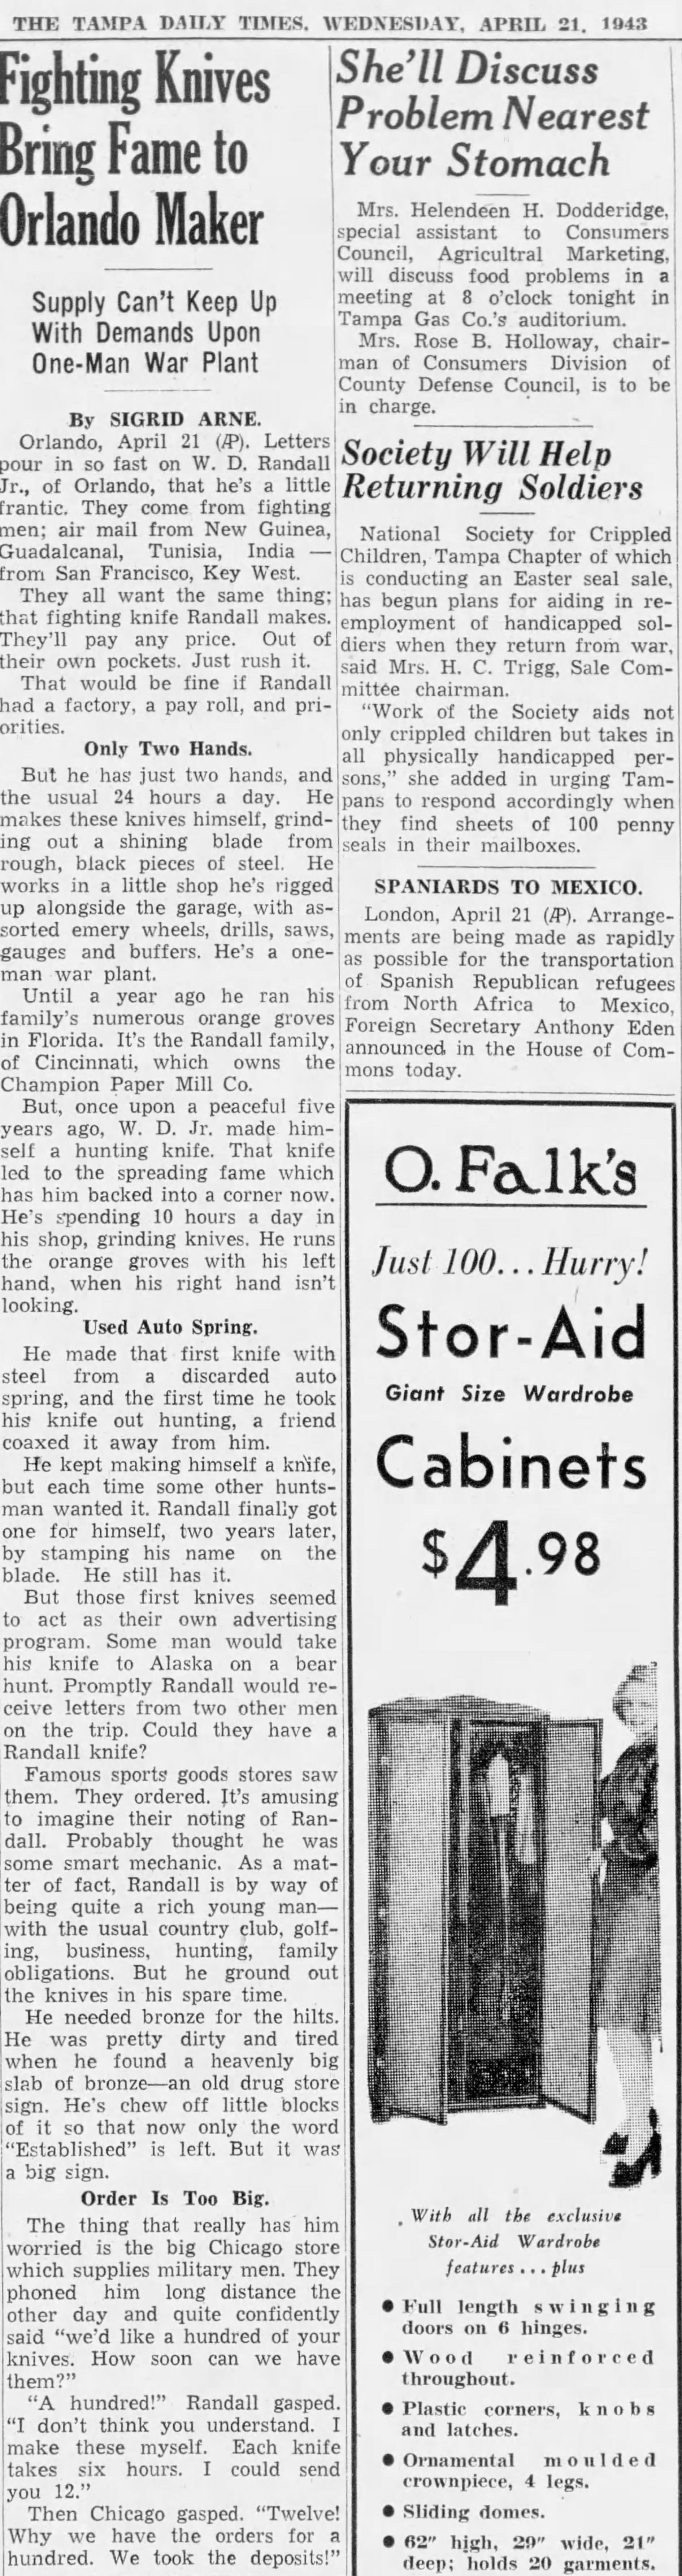 The_Tampa_Times_Wed__Apr_21__1943_.jpg